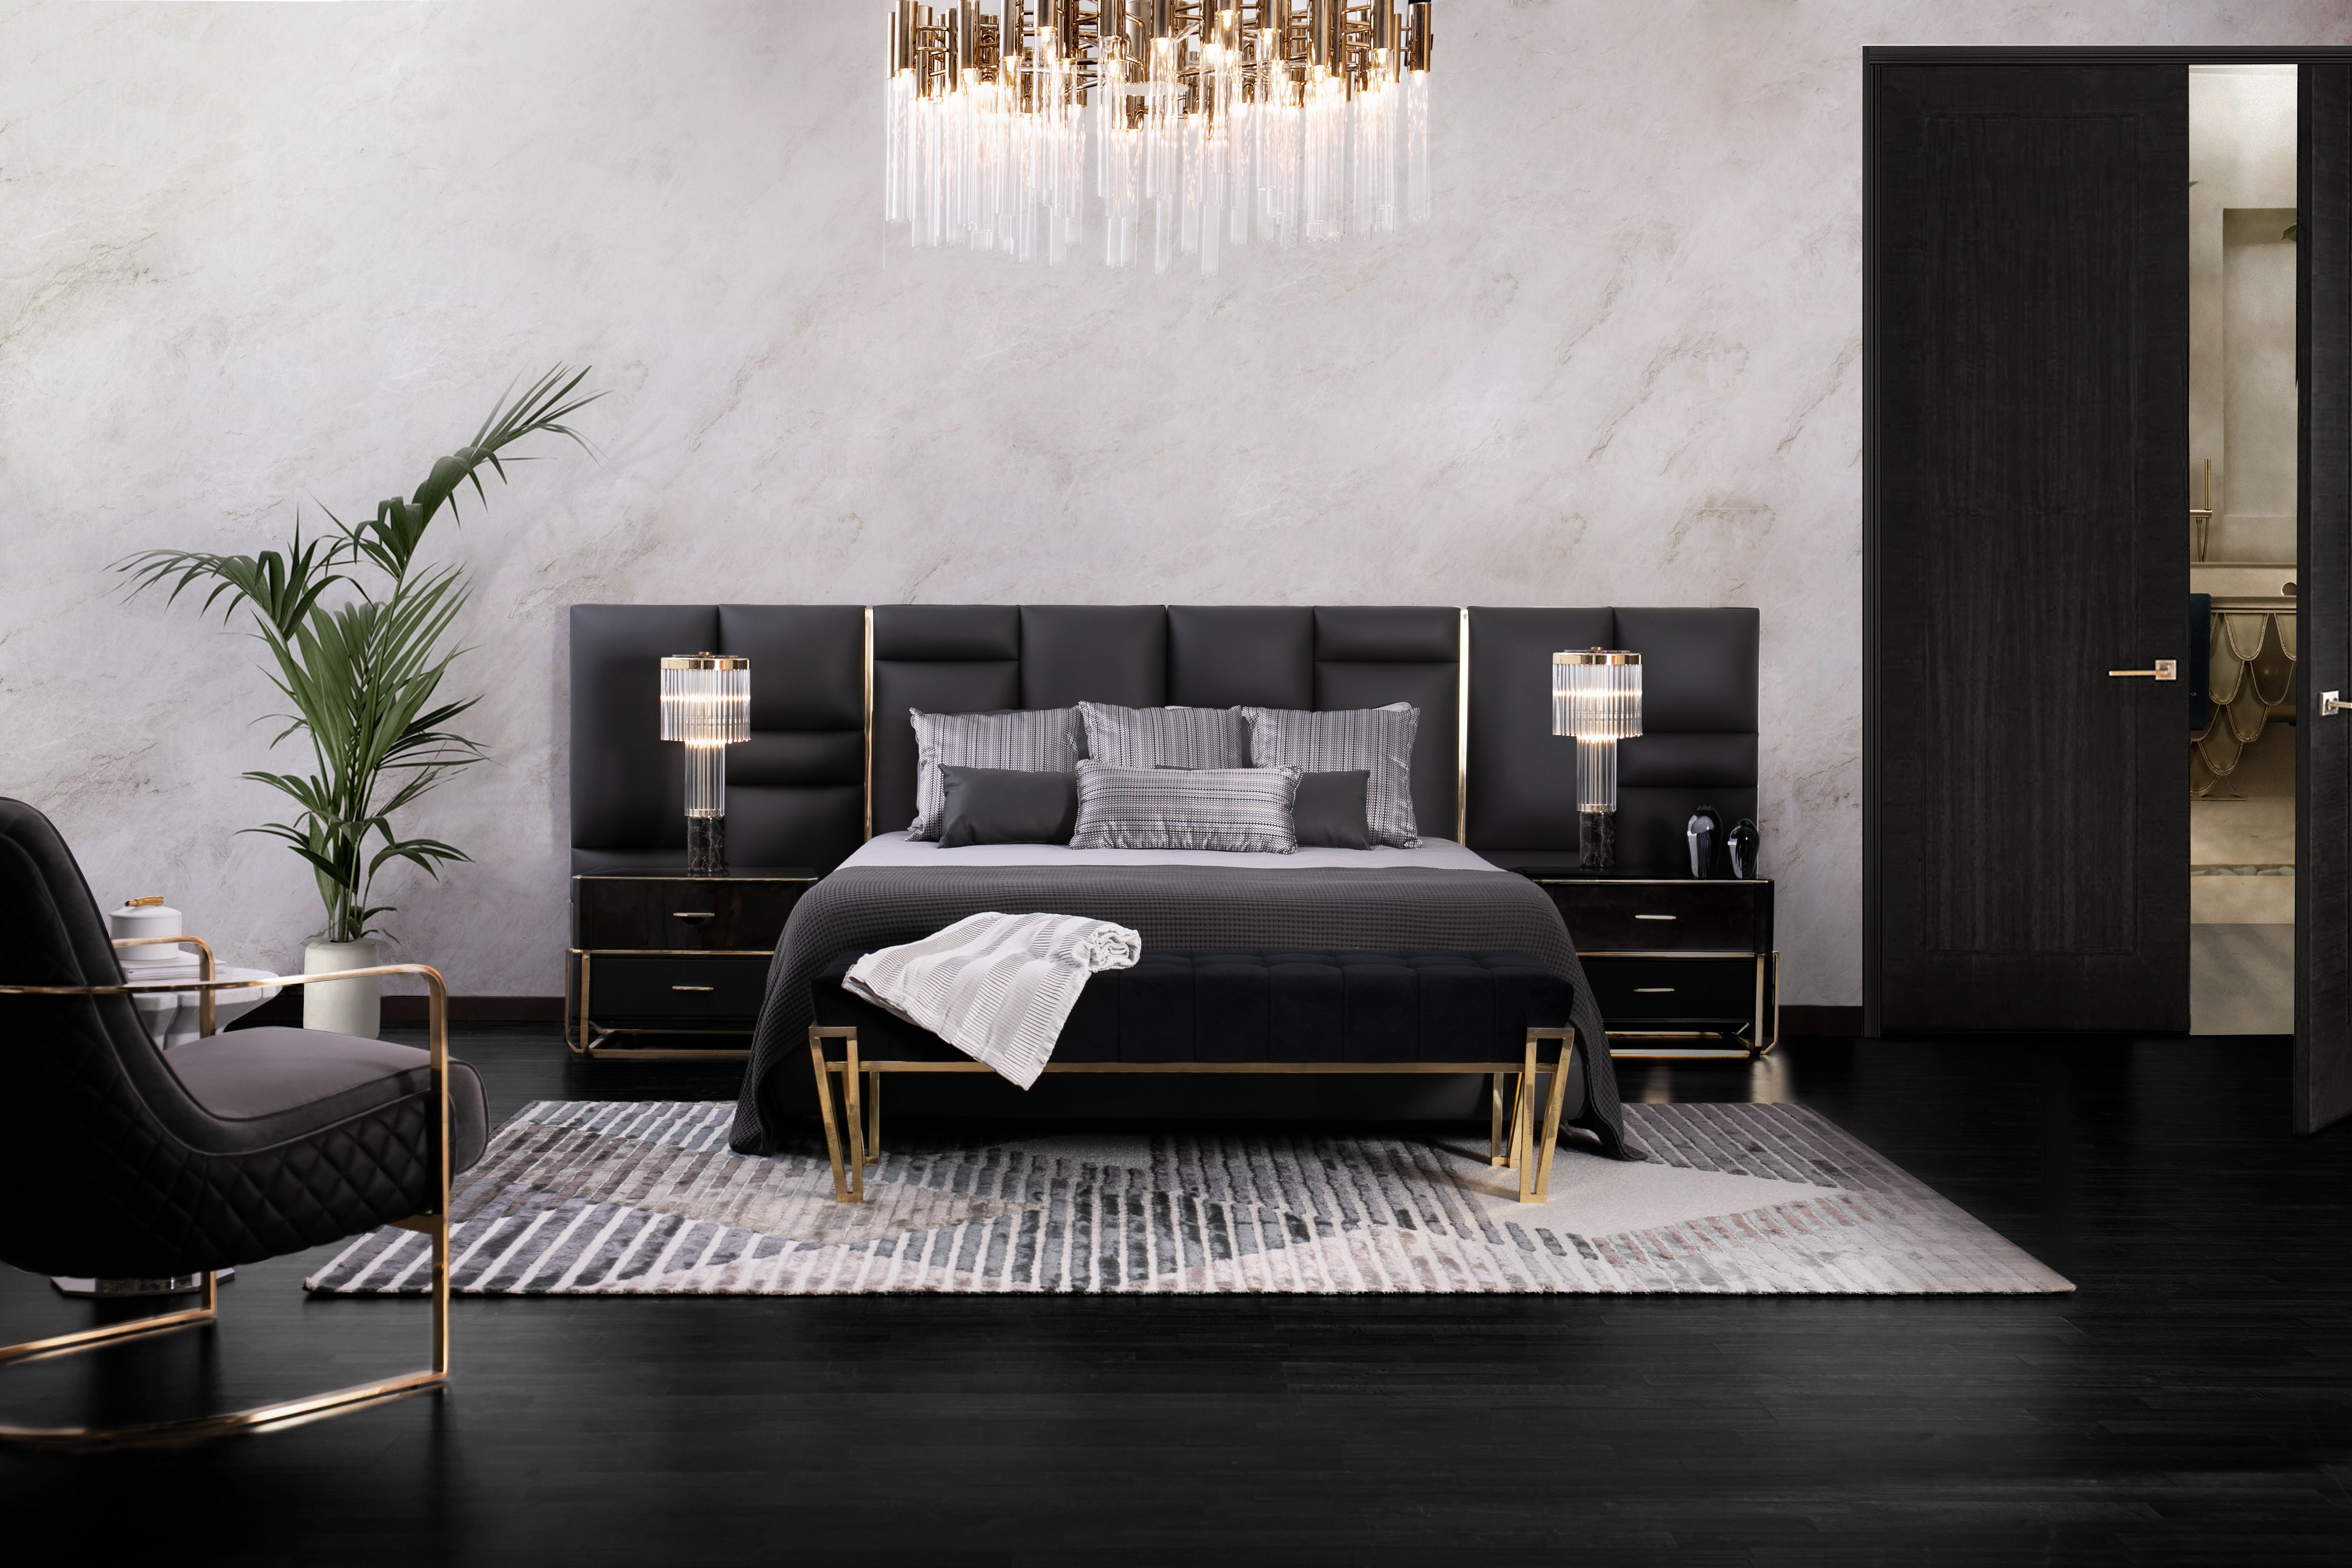 The Bed Is The Main Piece Of Any Bedroom Design In 2020 Luxurious Bedrooms Interior Design Luxury Home Decor